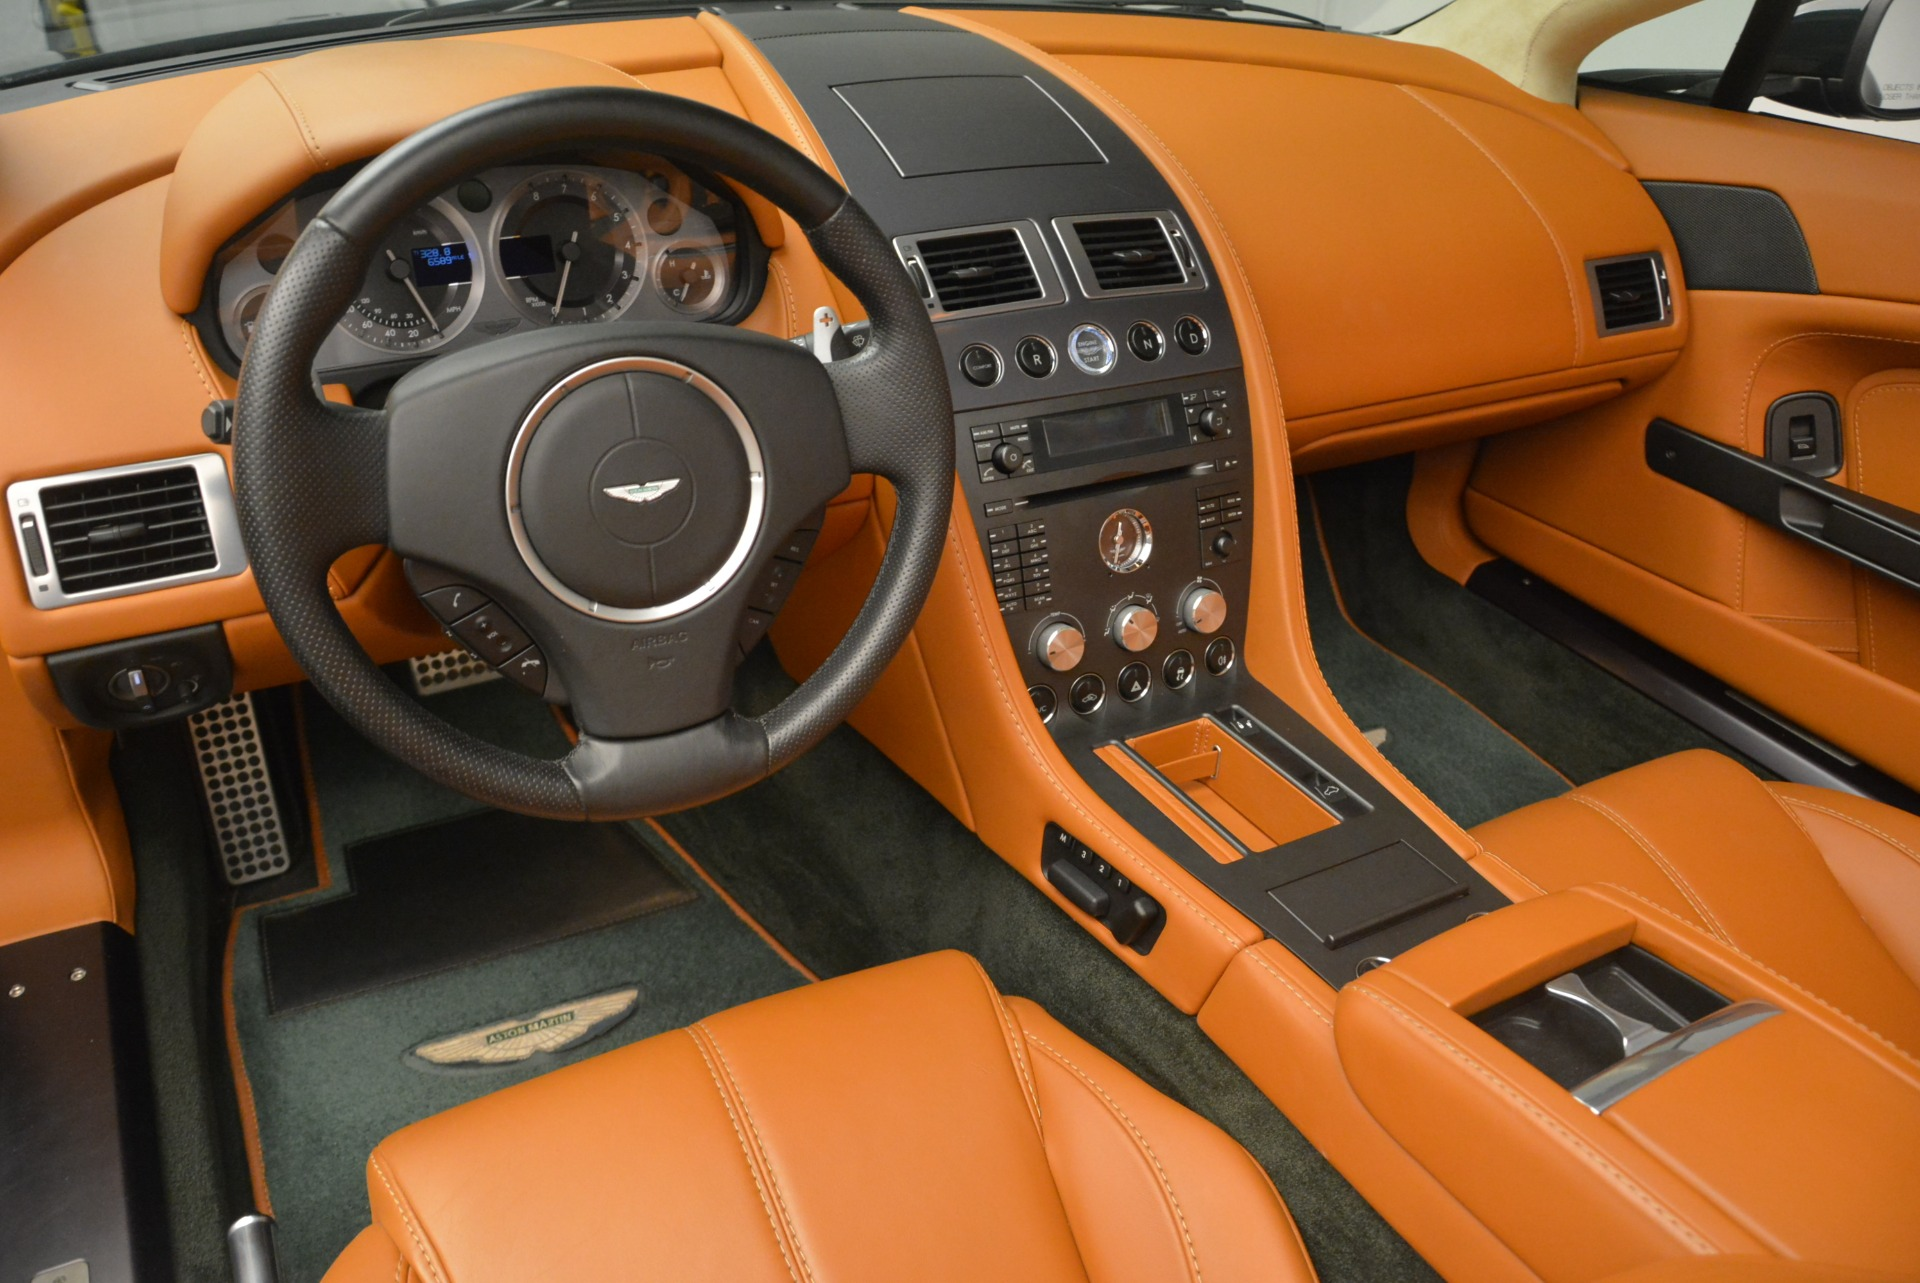 Used 2008 Aston Martin V8 Vantage Roadster For Sale In Greenwich, CT 2422_p17